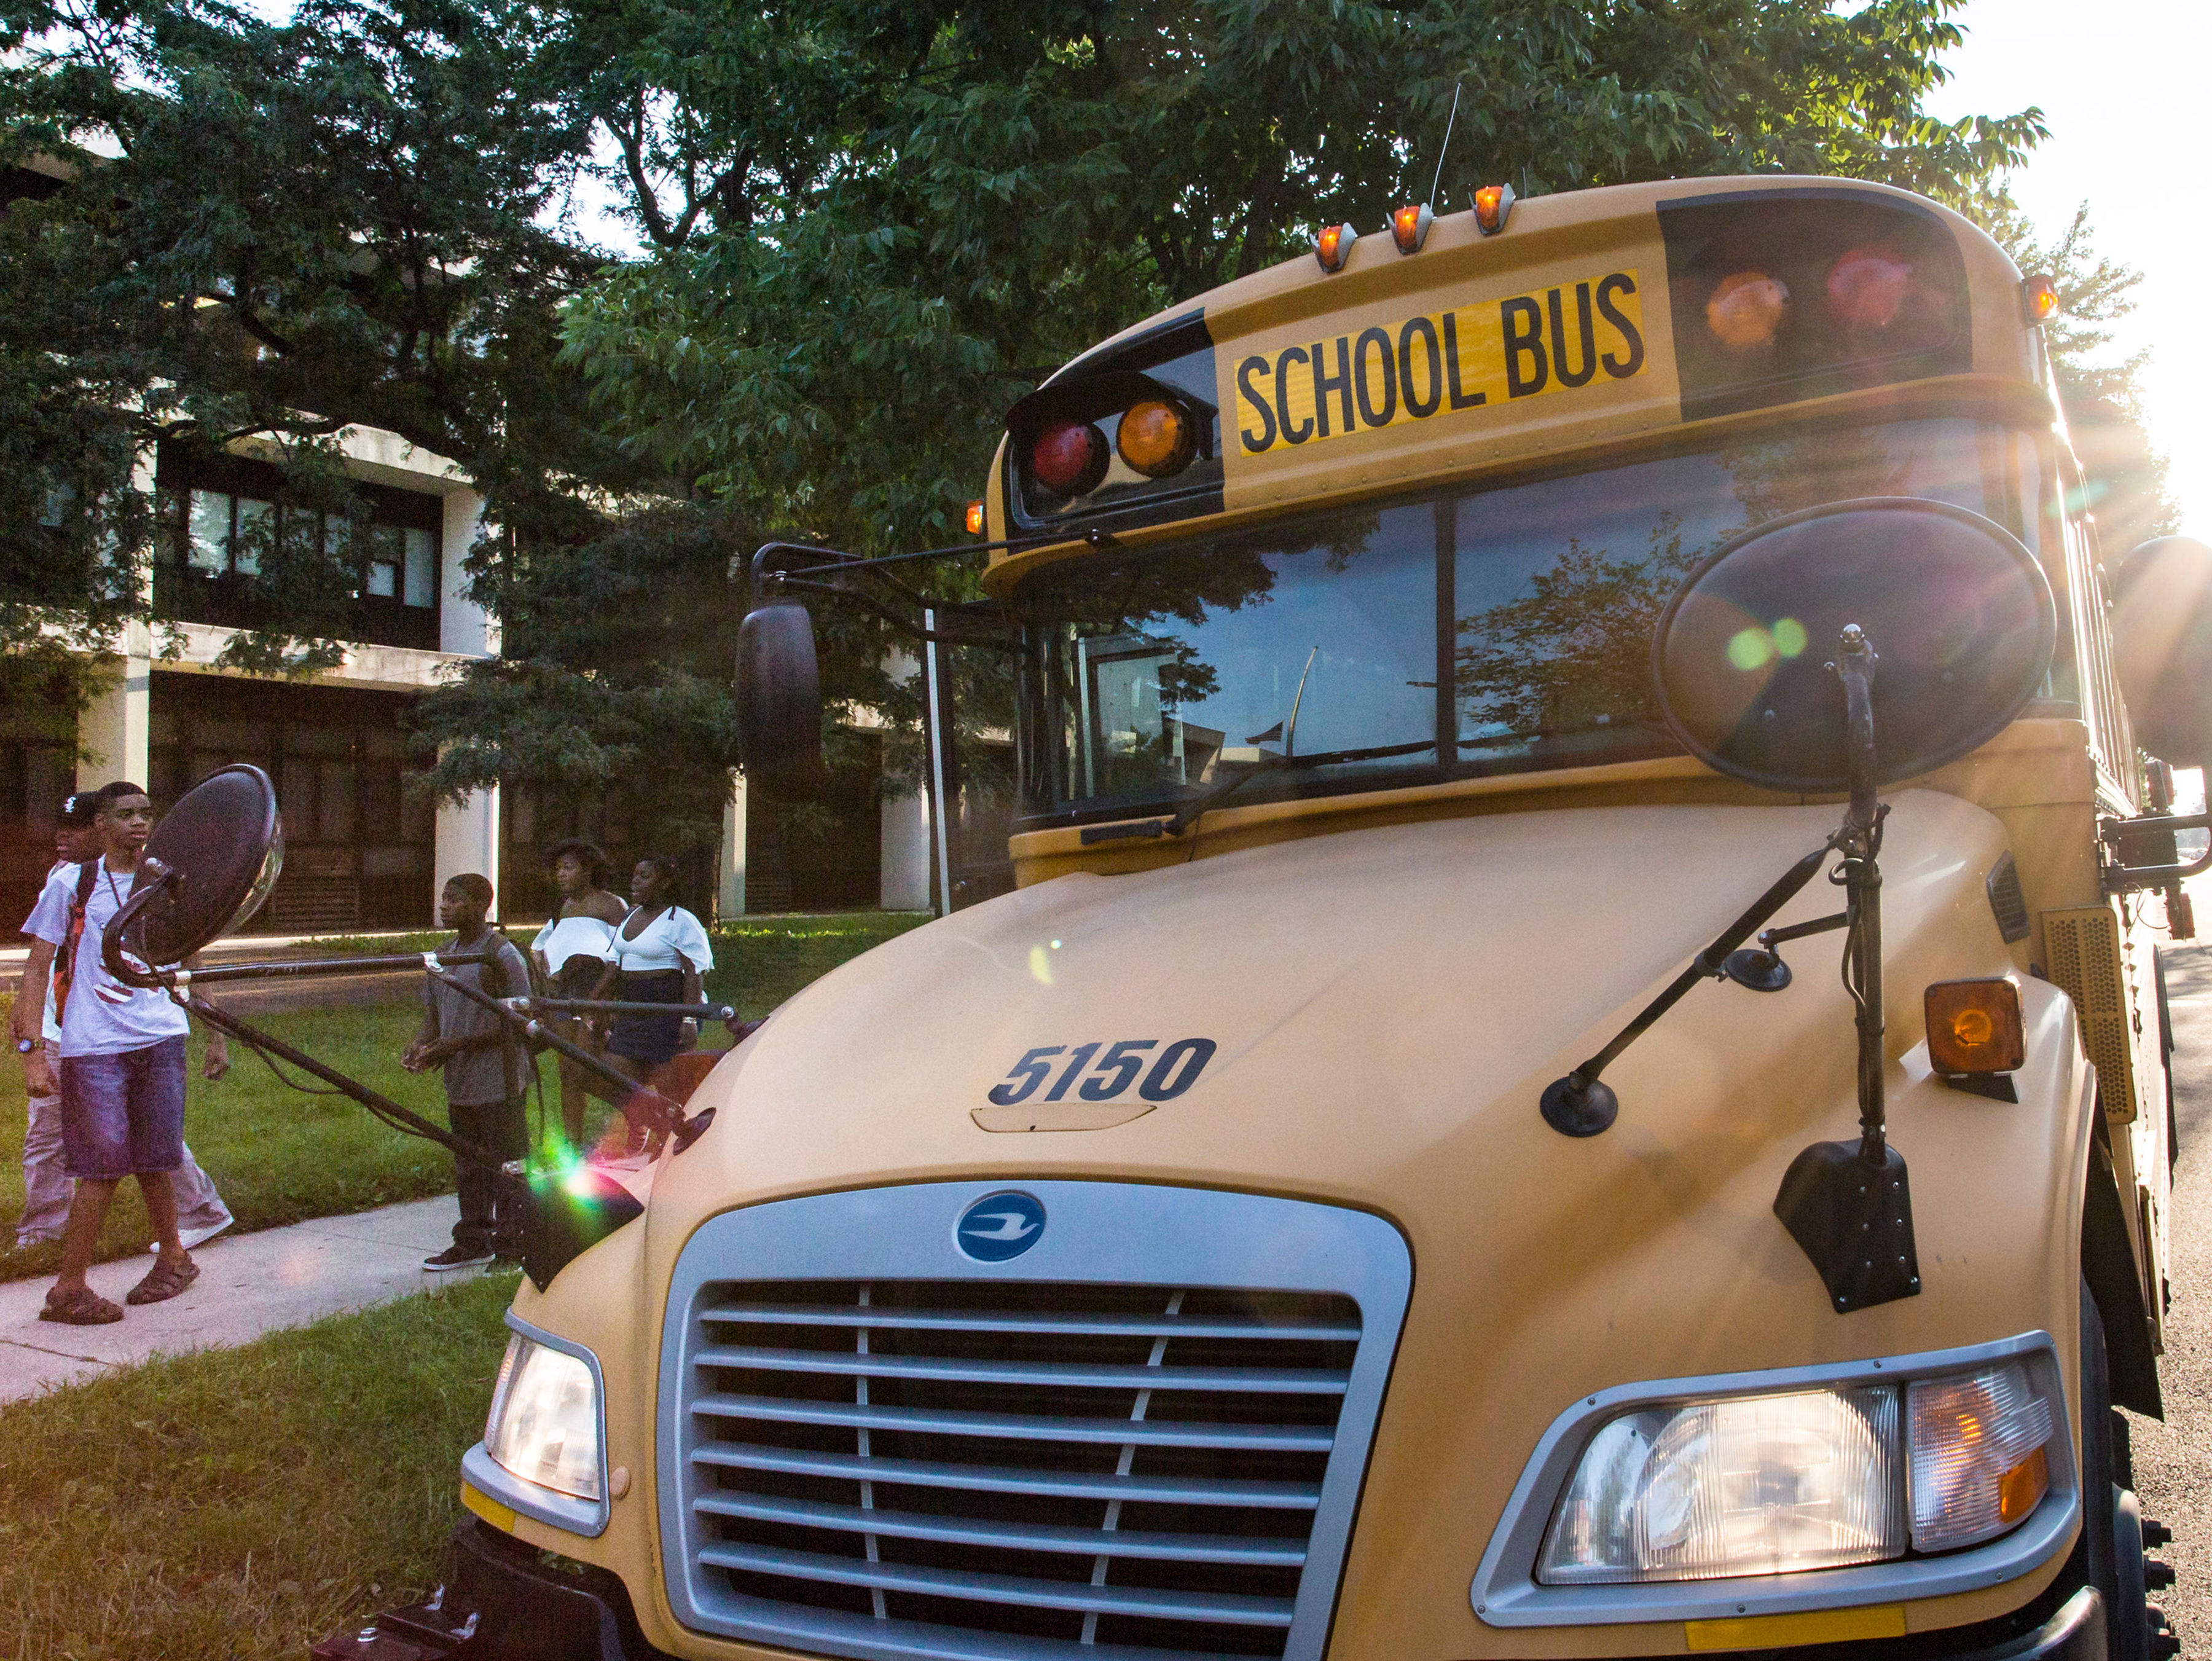 A bus driver shortage has left some CPS students without transportation to get to school.